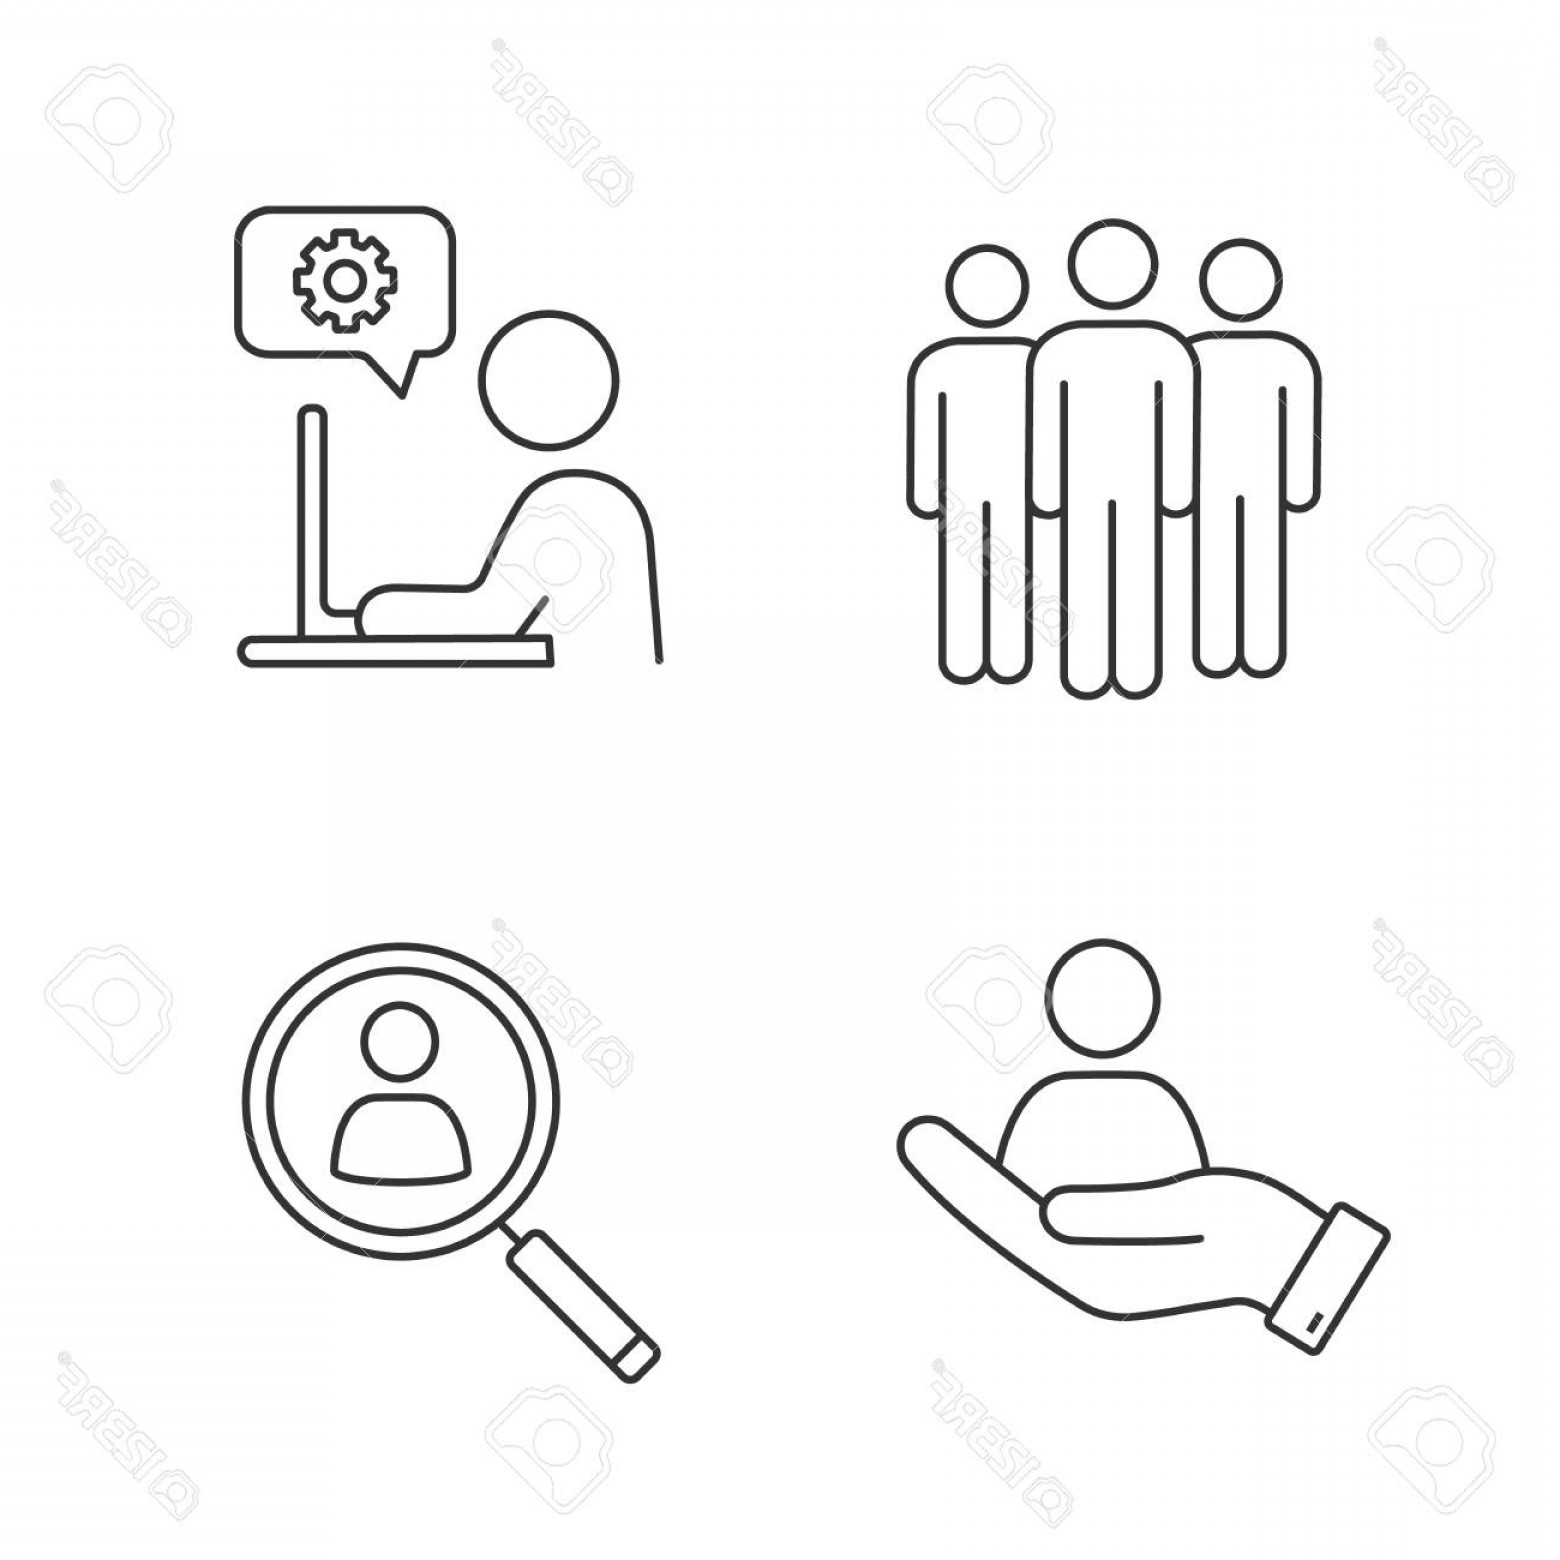 Support Staff Vector: Photostock Vector Business Management Linear Icons Set Team Technical Support Staff Searching Hr Management Thin Line